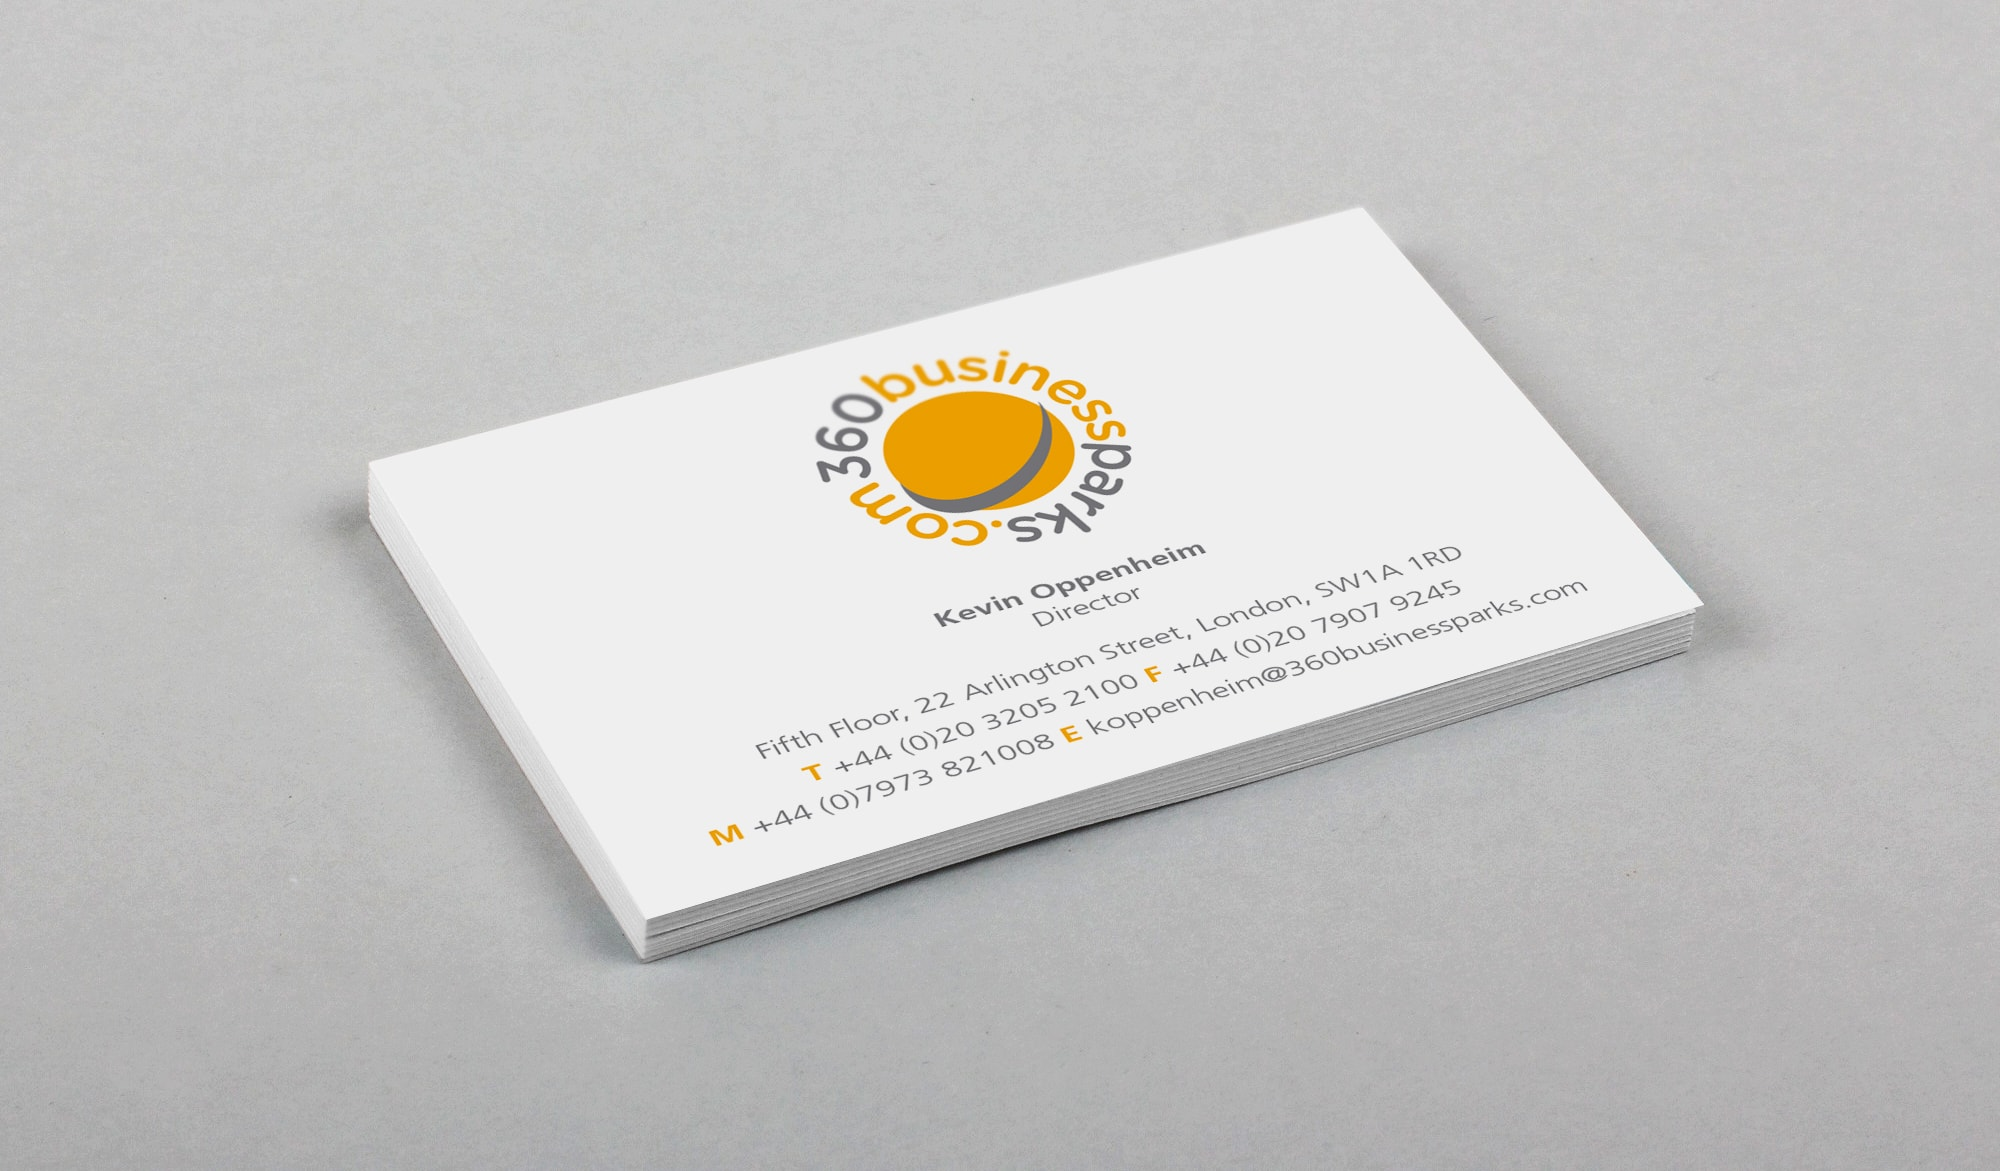 360 business park - card